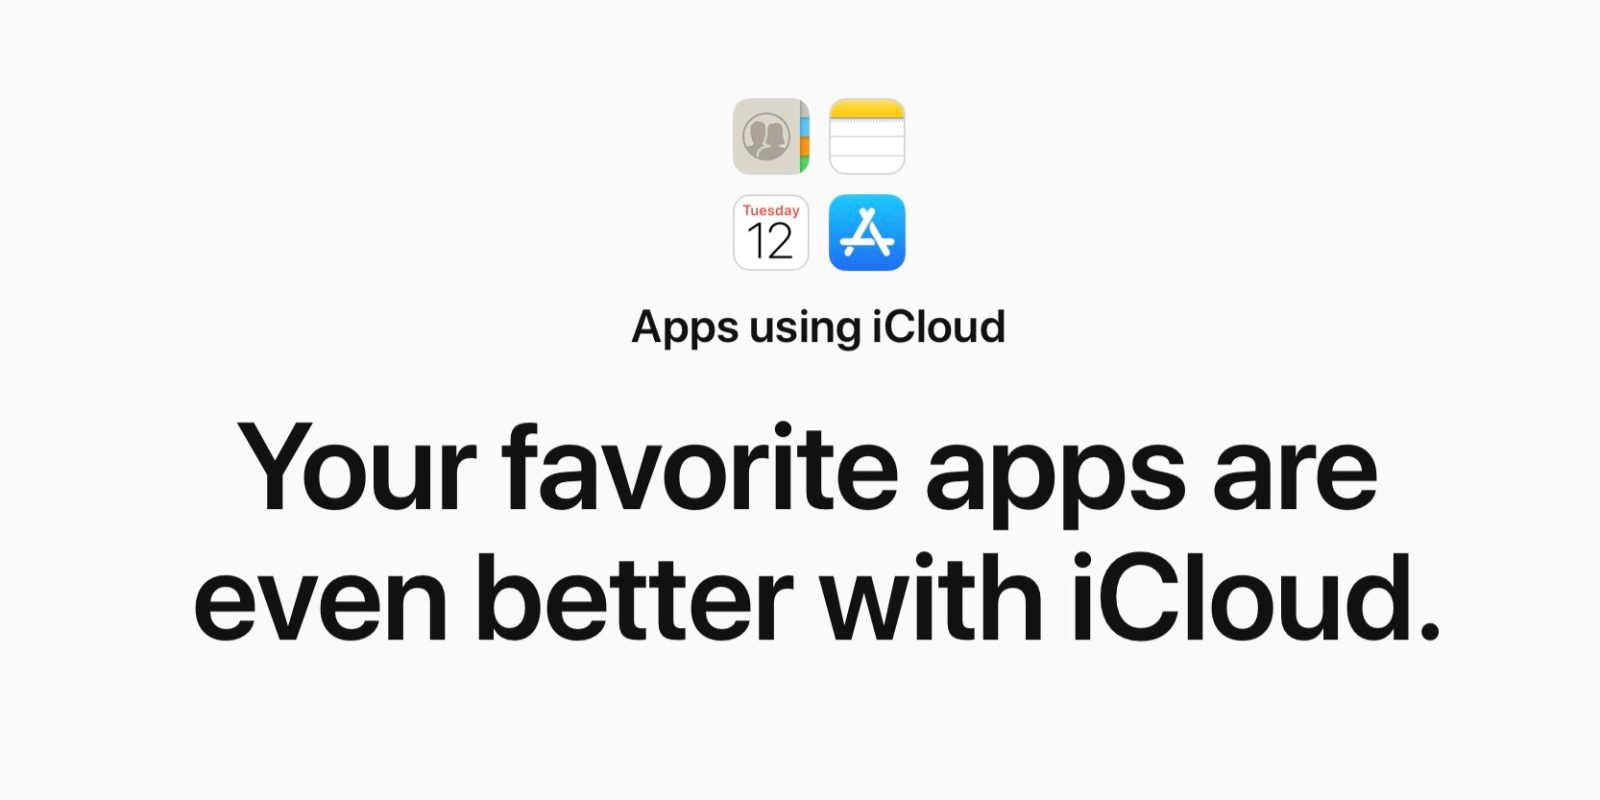 How to access iCloud on iPhone, iPad, Mac, and the web